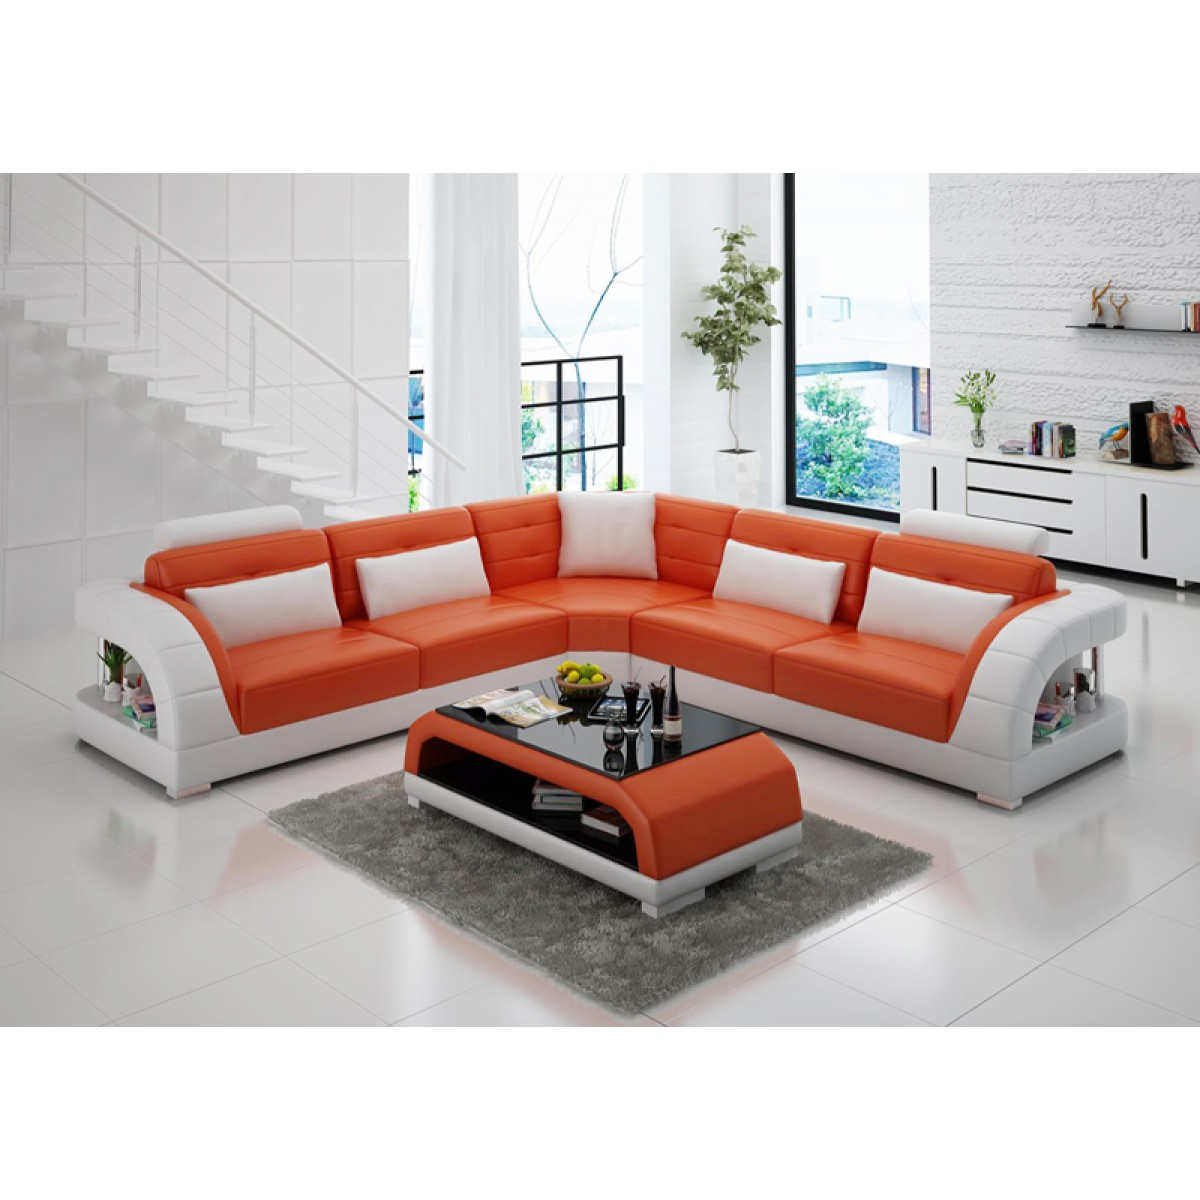 Grand canap d 39 angle en cuir enzo pop - Canape d angle orange ...